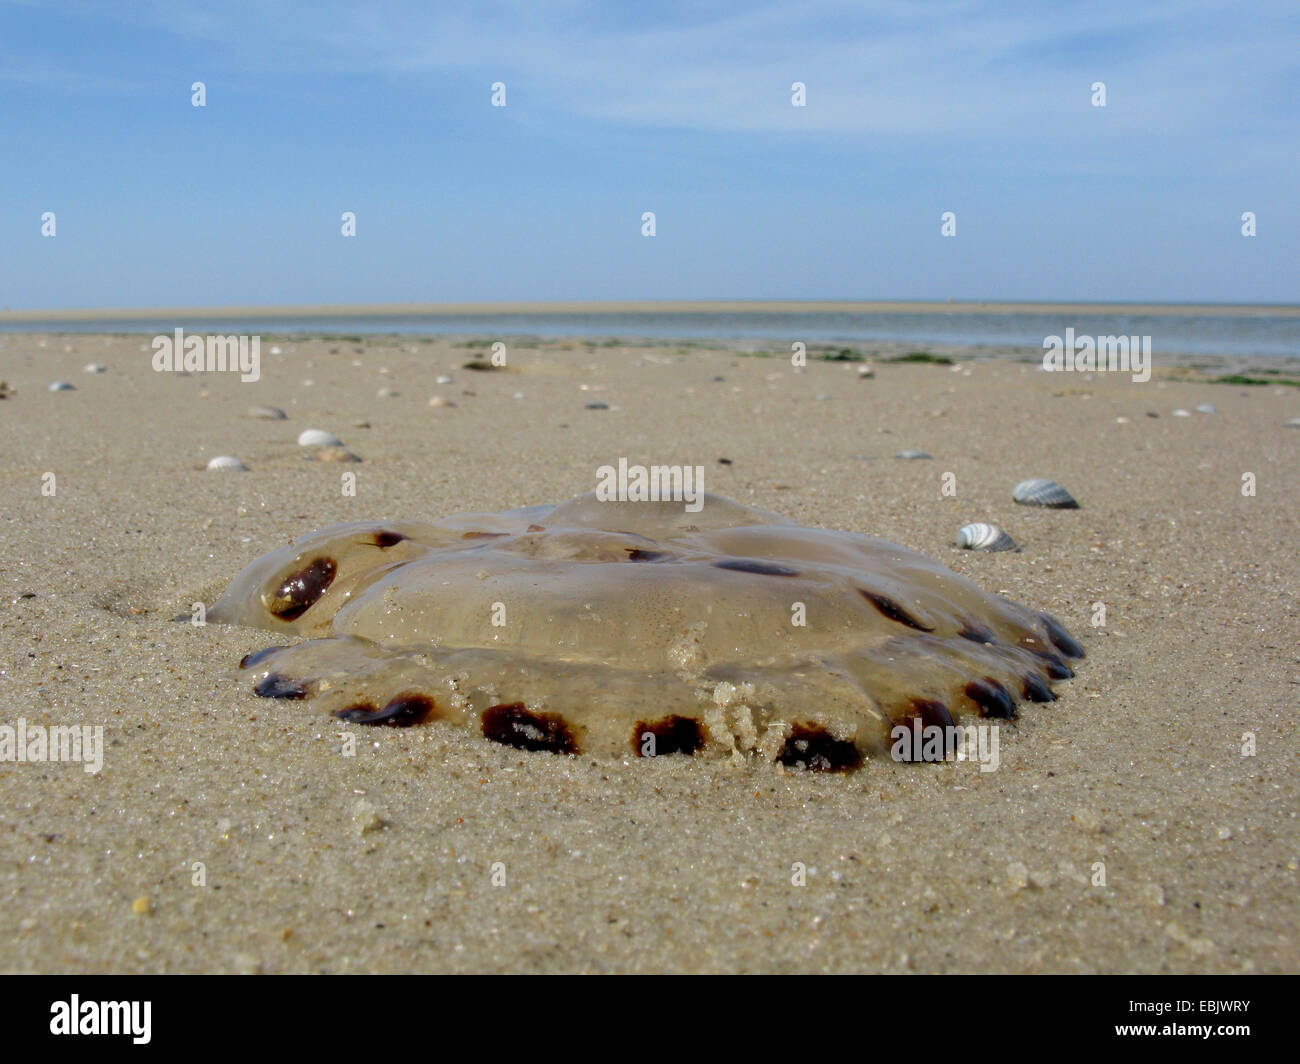 compass jellyfish, red-banded jellyfish (Chrysaora hysoscella), washed up on the beach, Germany, Lower Saxony, Baltrum Stock Photo